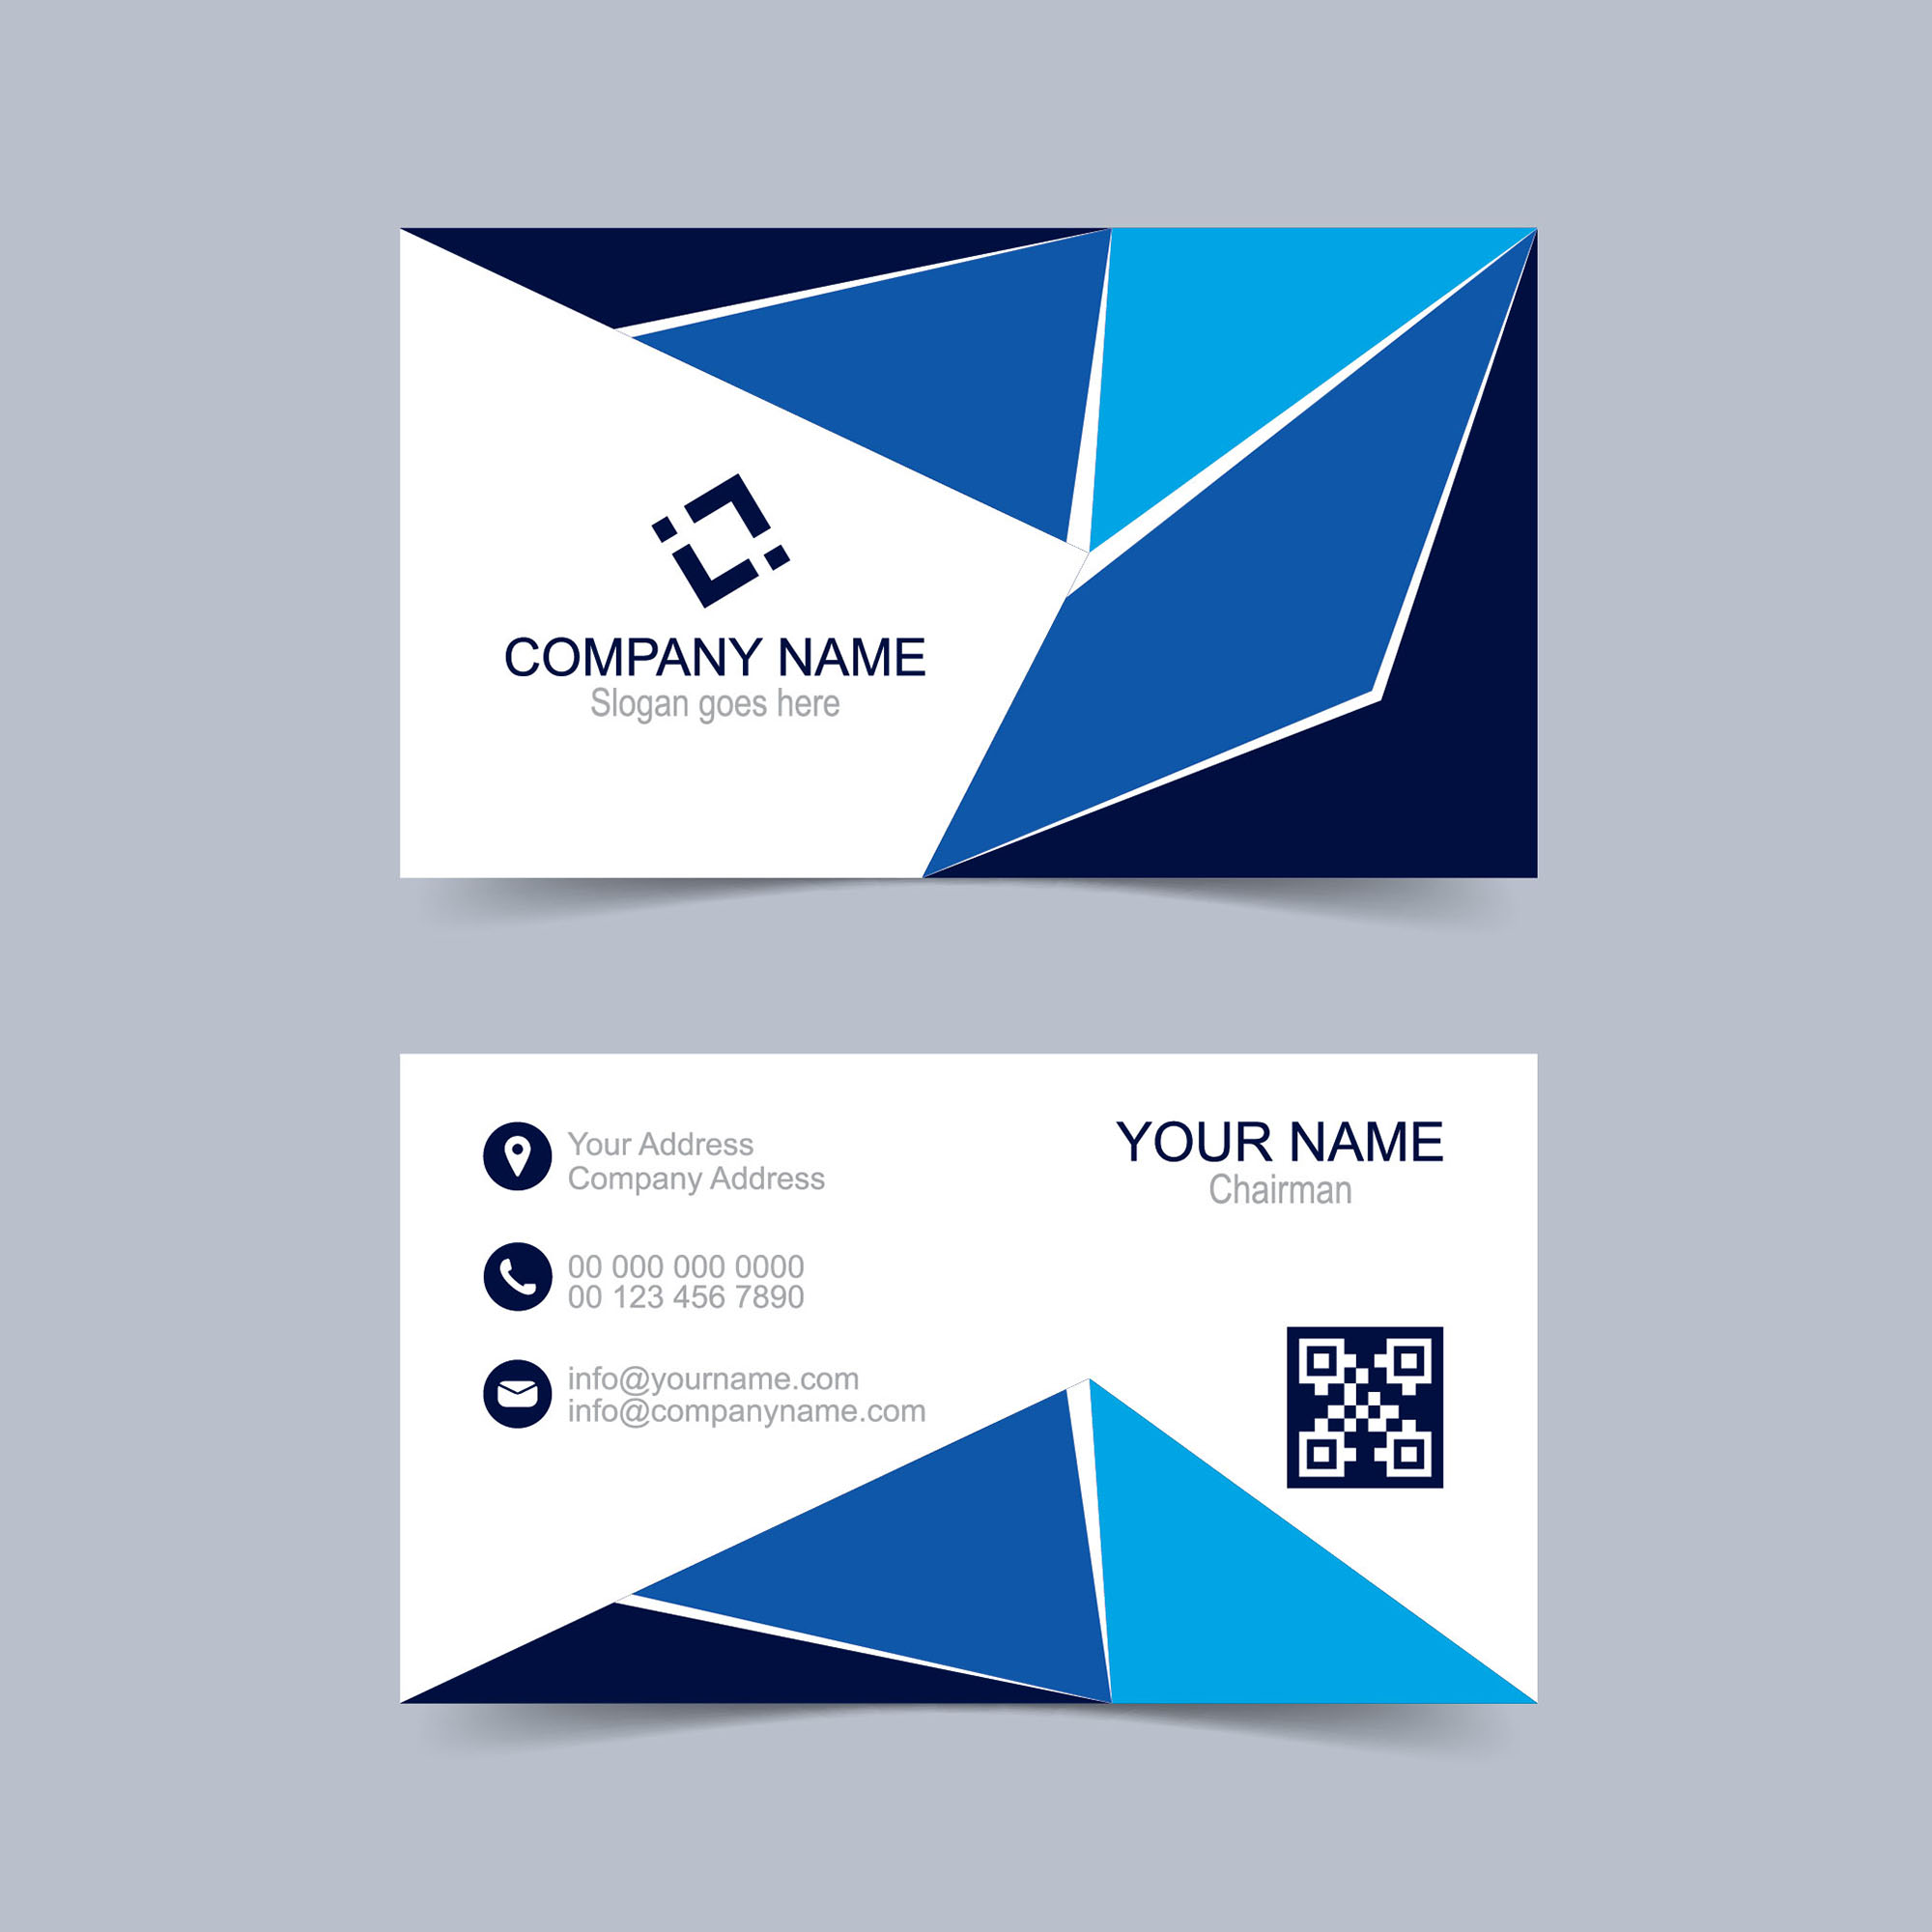 Card design templates yolarnetonic card design templates wajeb